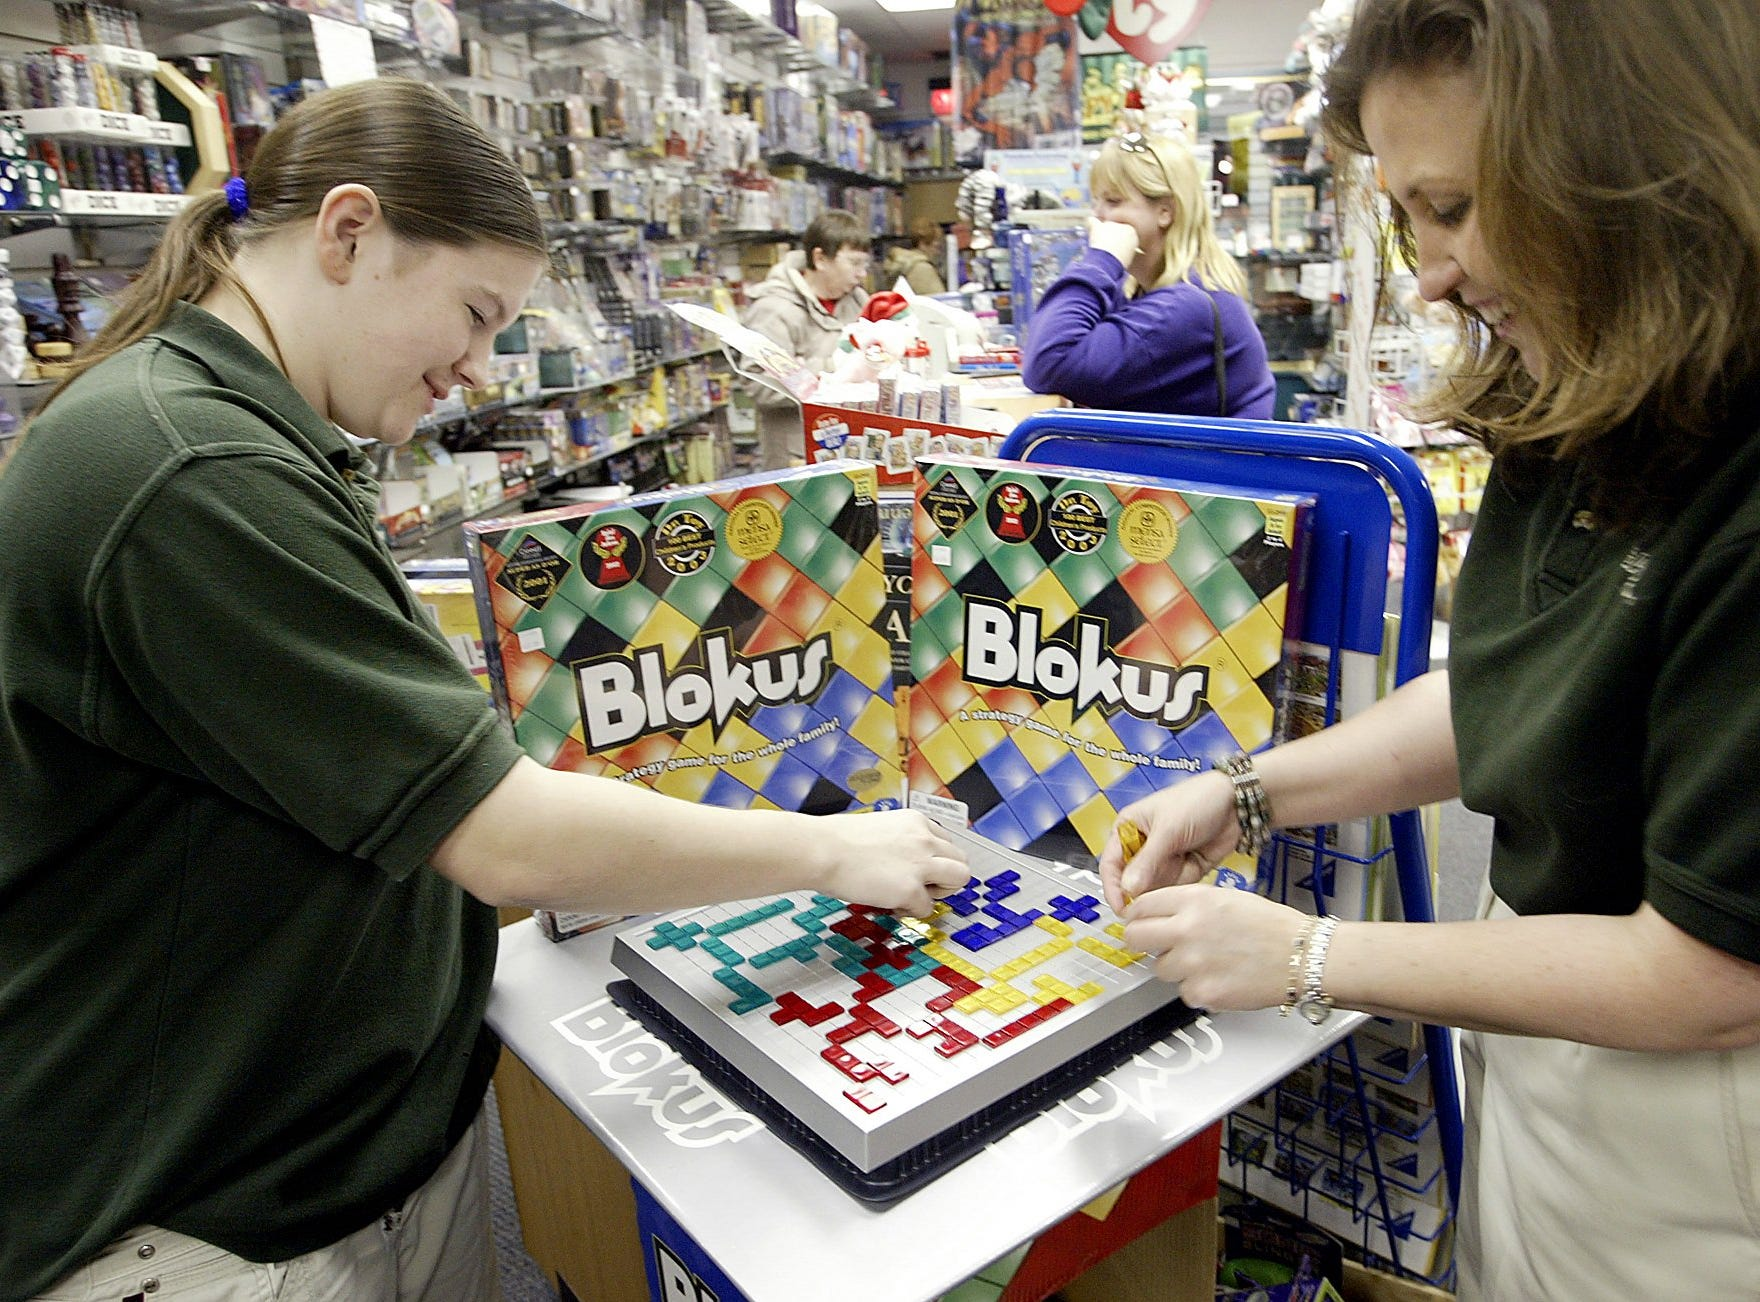 Corinne Harrison, manager of Games by James, and Keri McDonough, left, play a game at the store in the Valley West Mall in West Des Moines on Wednesday, Dec. 31, 2003.